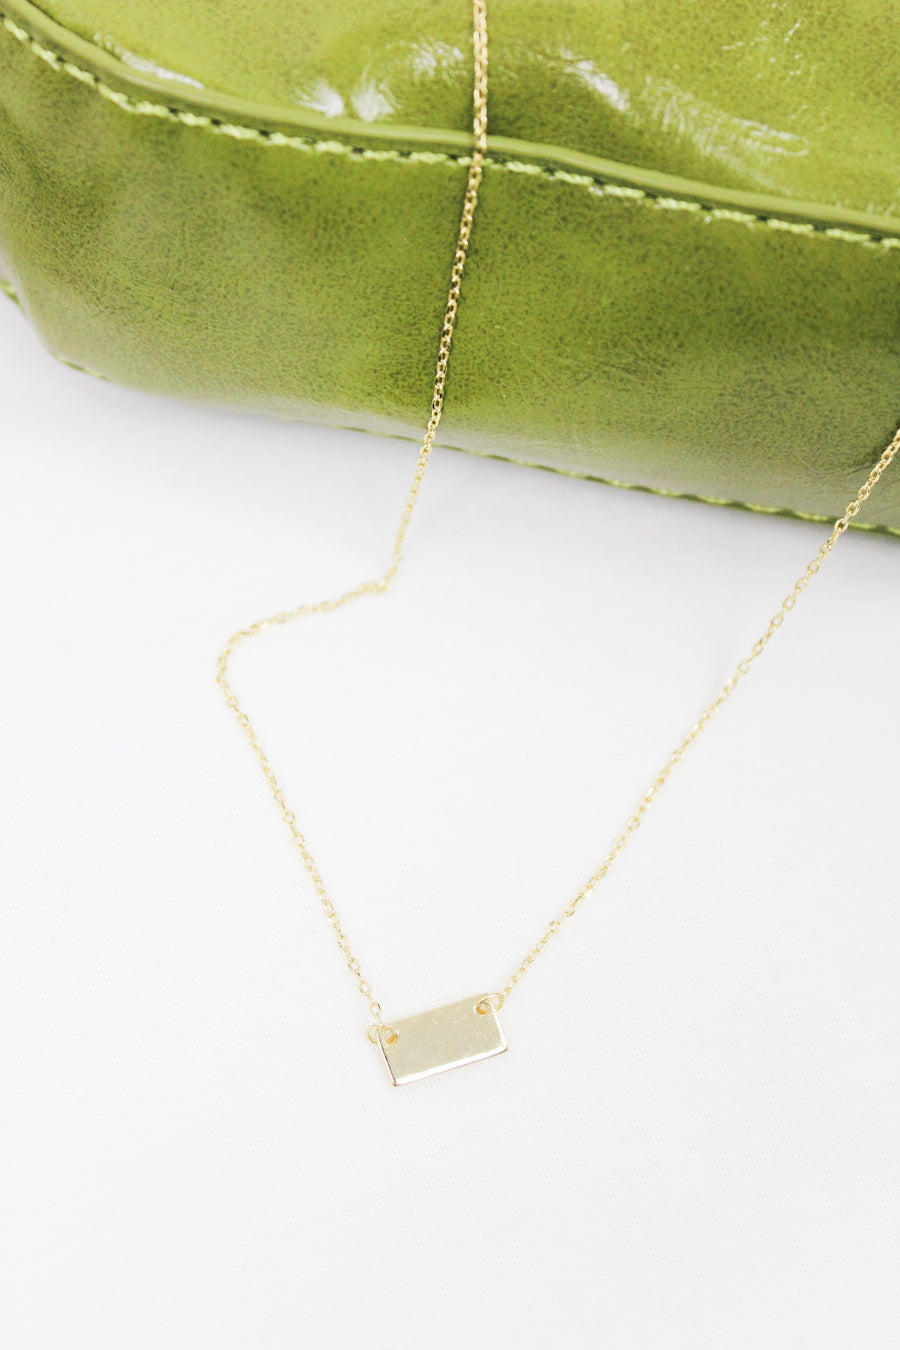 FREE BIRD GOLD PLATE NECKLACE